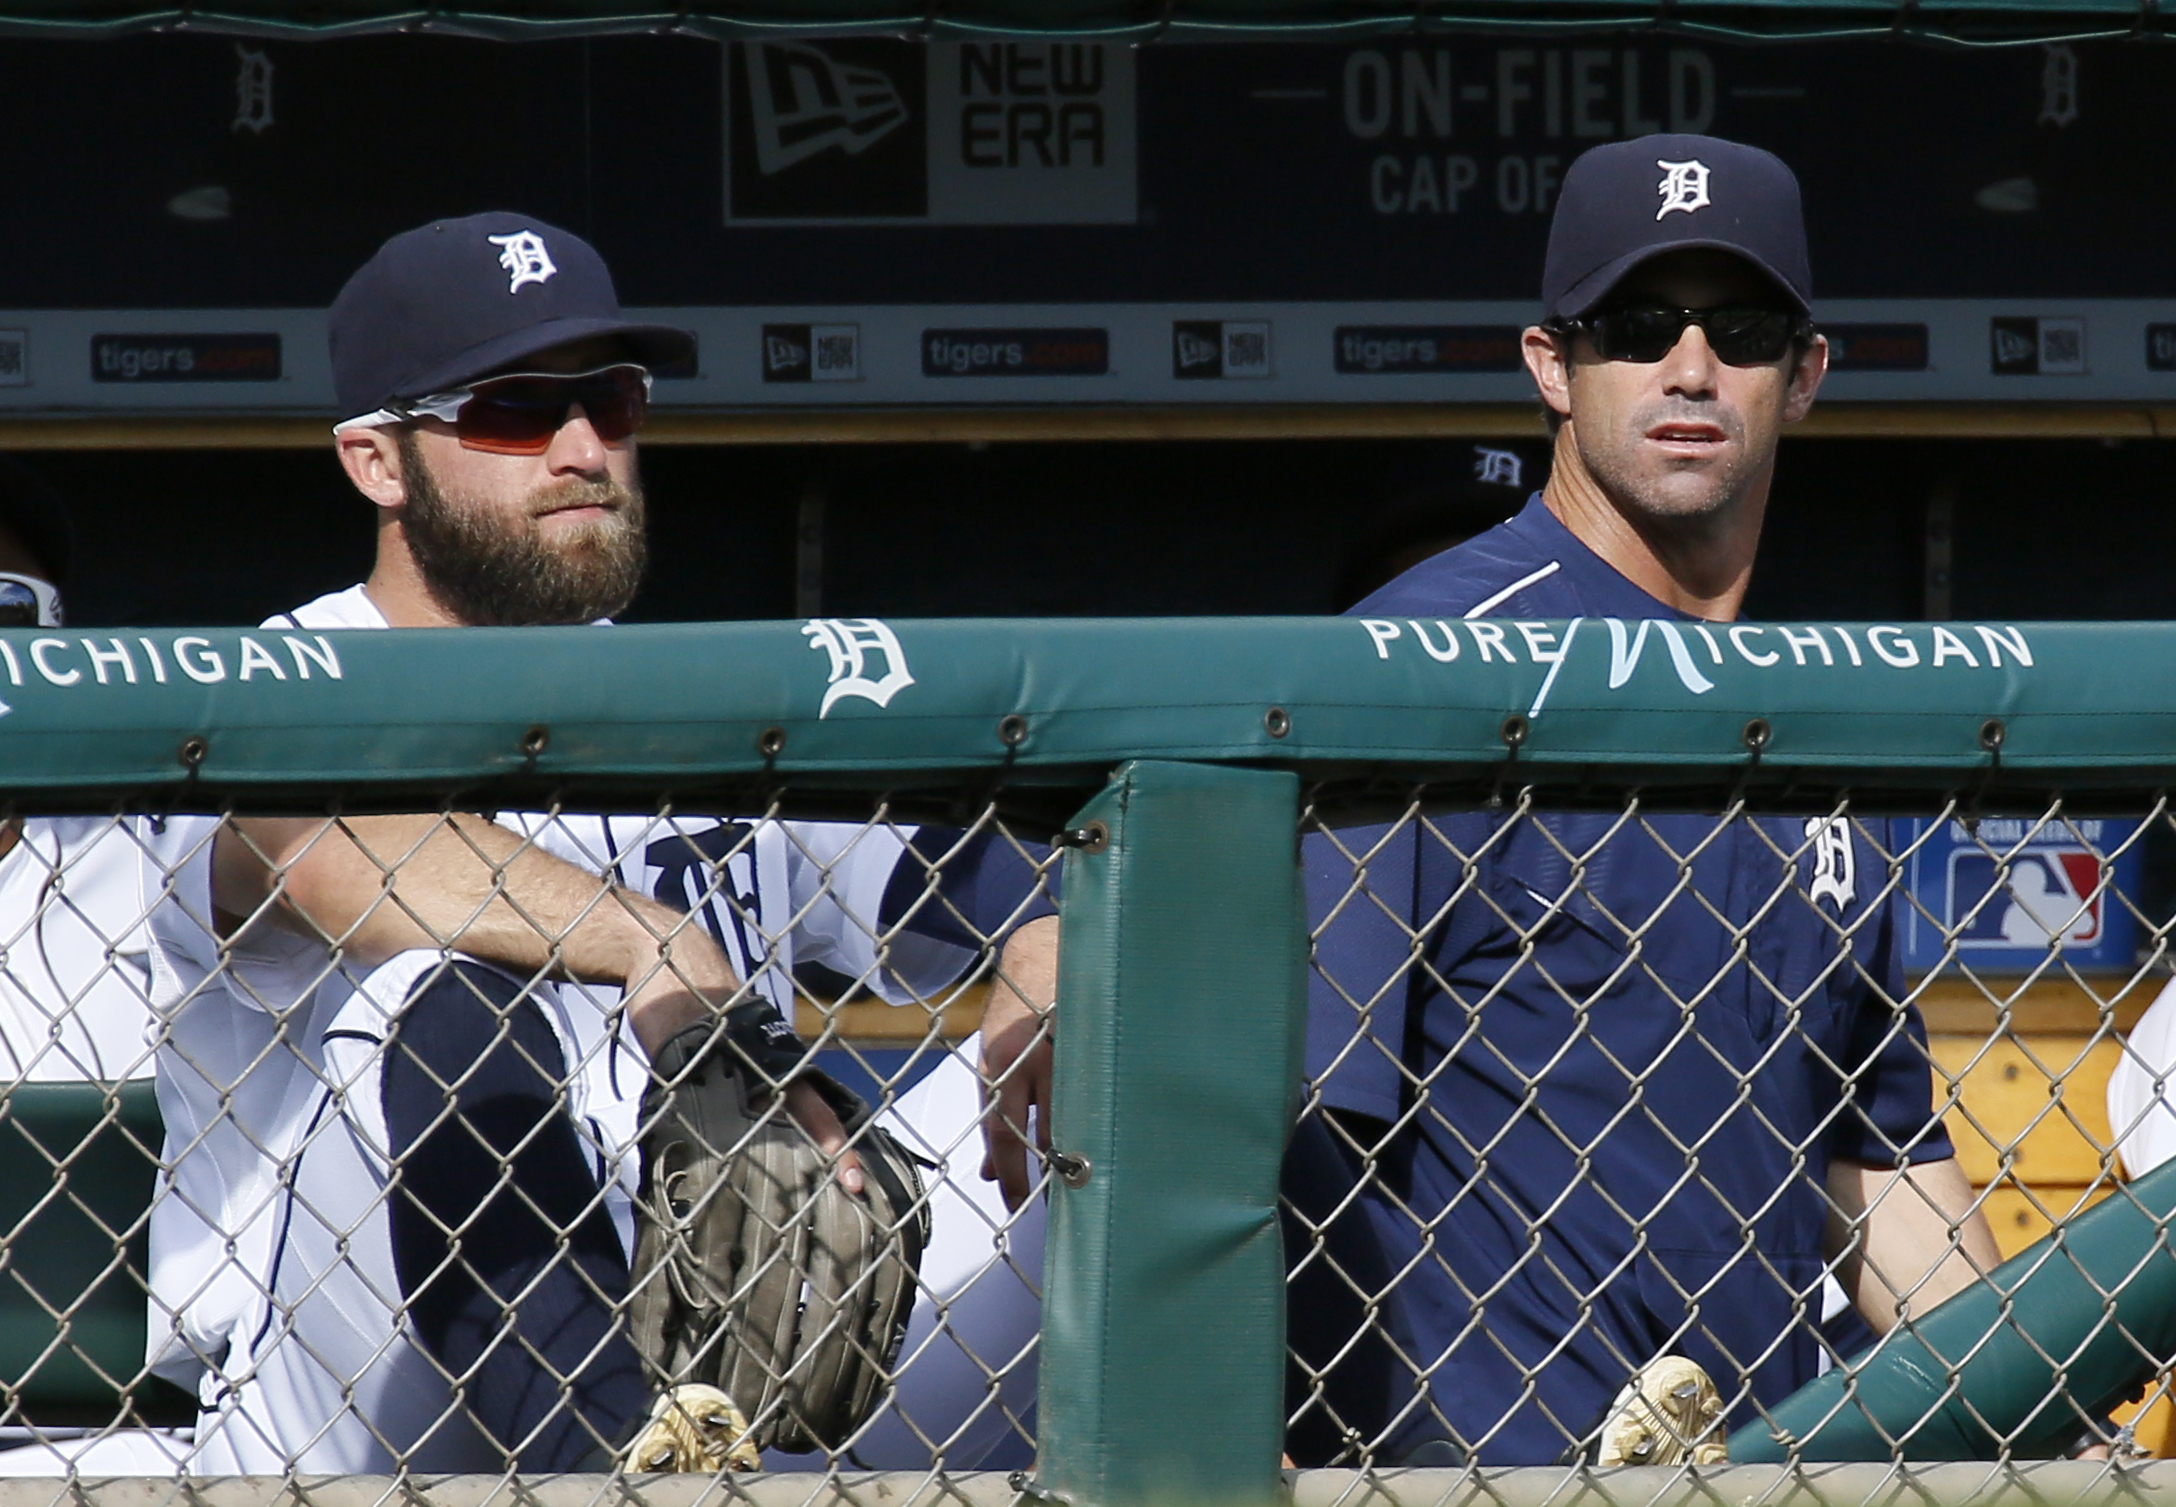 Detroit Tigers' Tyler Collins, left, and manager Brad Ausmus looks out from the dugout during the ninth inning of a 10-3 loss to the Kansas City Royals in a baseball game at Comerica Park Sunday, Sept. 20, 2015, in Detroit. (AP Photo/Duane Burleson)